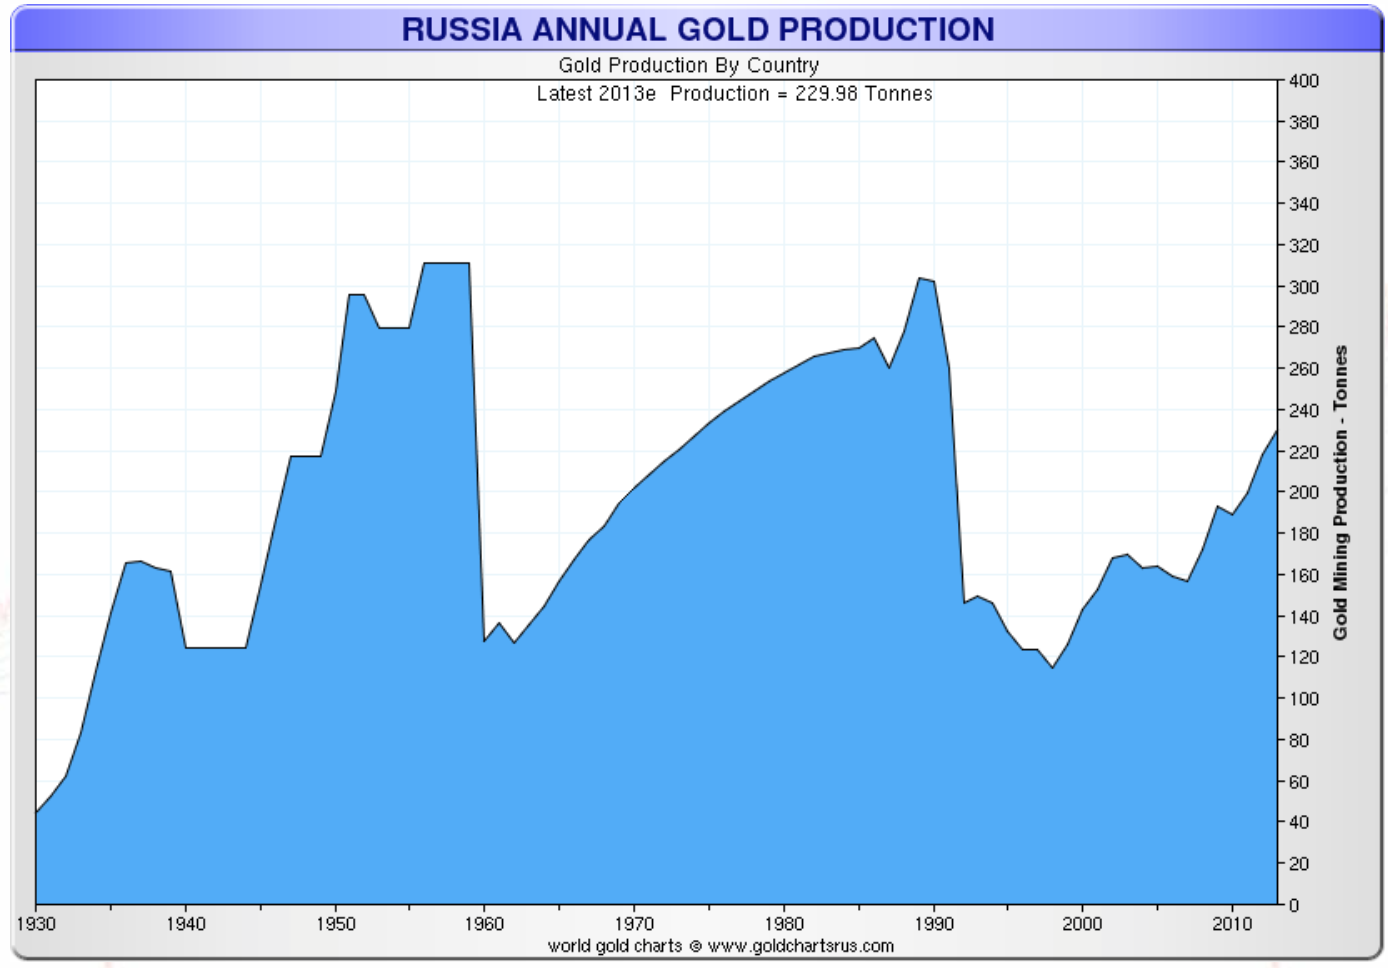 Russian annual gold production